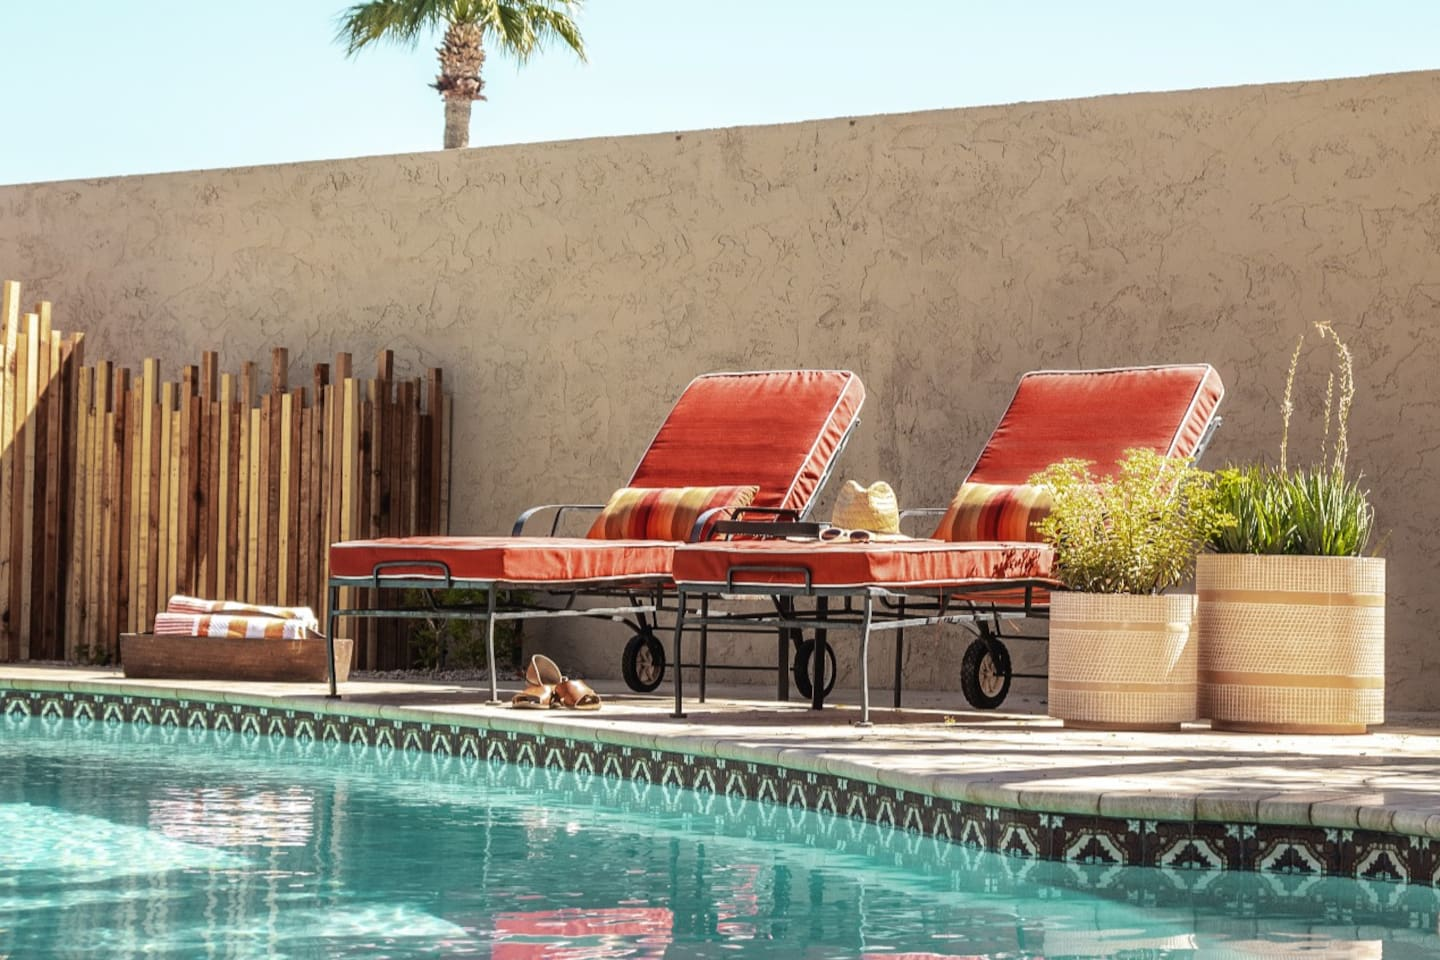 Comfy loungers and chairs throughout the patio and around the pool make for perfect sunbathing perches.